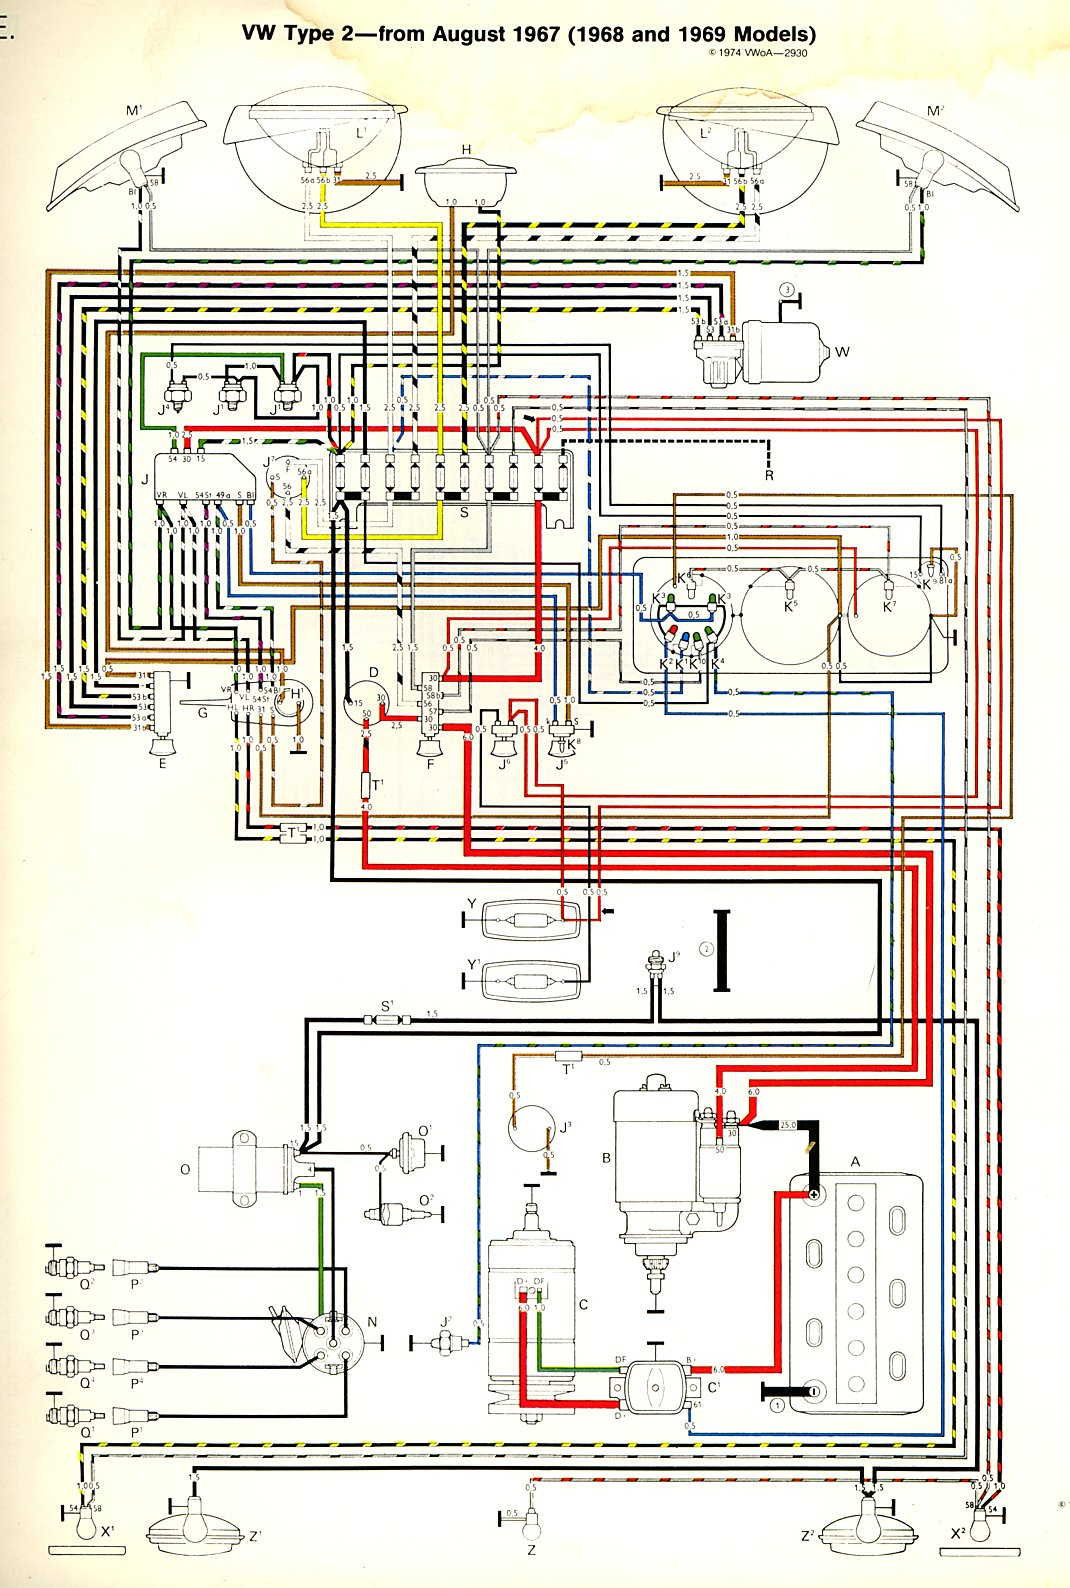 baybus_6869a bus wiring diagram vw wiring harness diagram \u2022 wiring diagrams j 1972 vw beetle fuse box diagram at nearapp.co